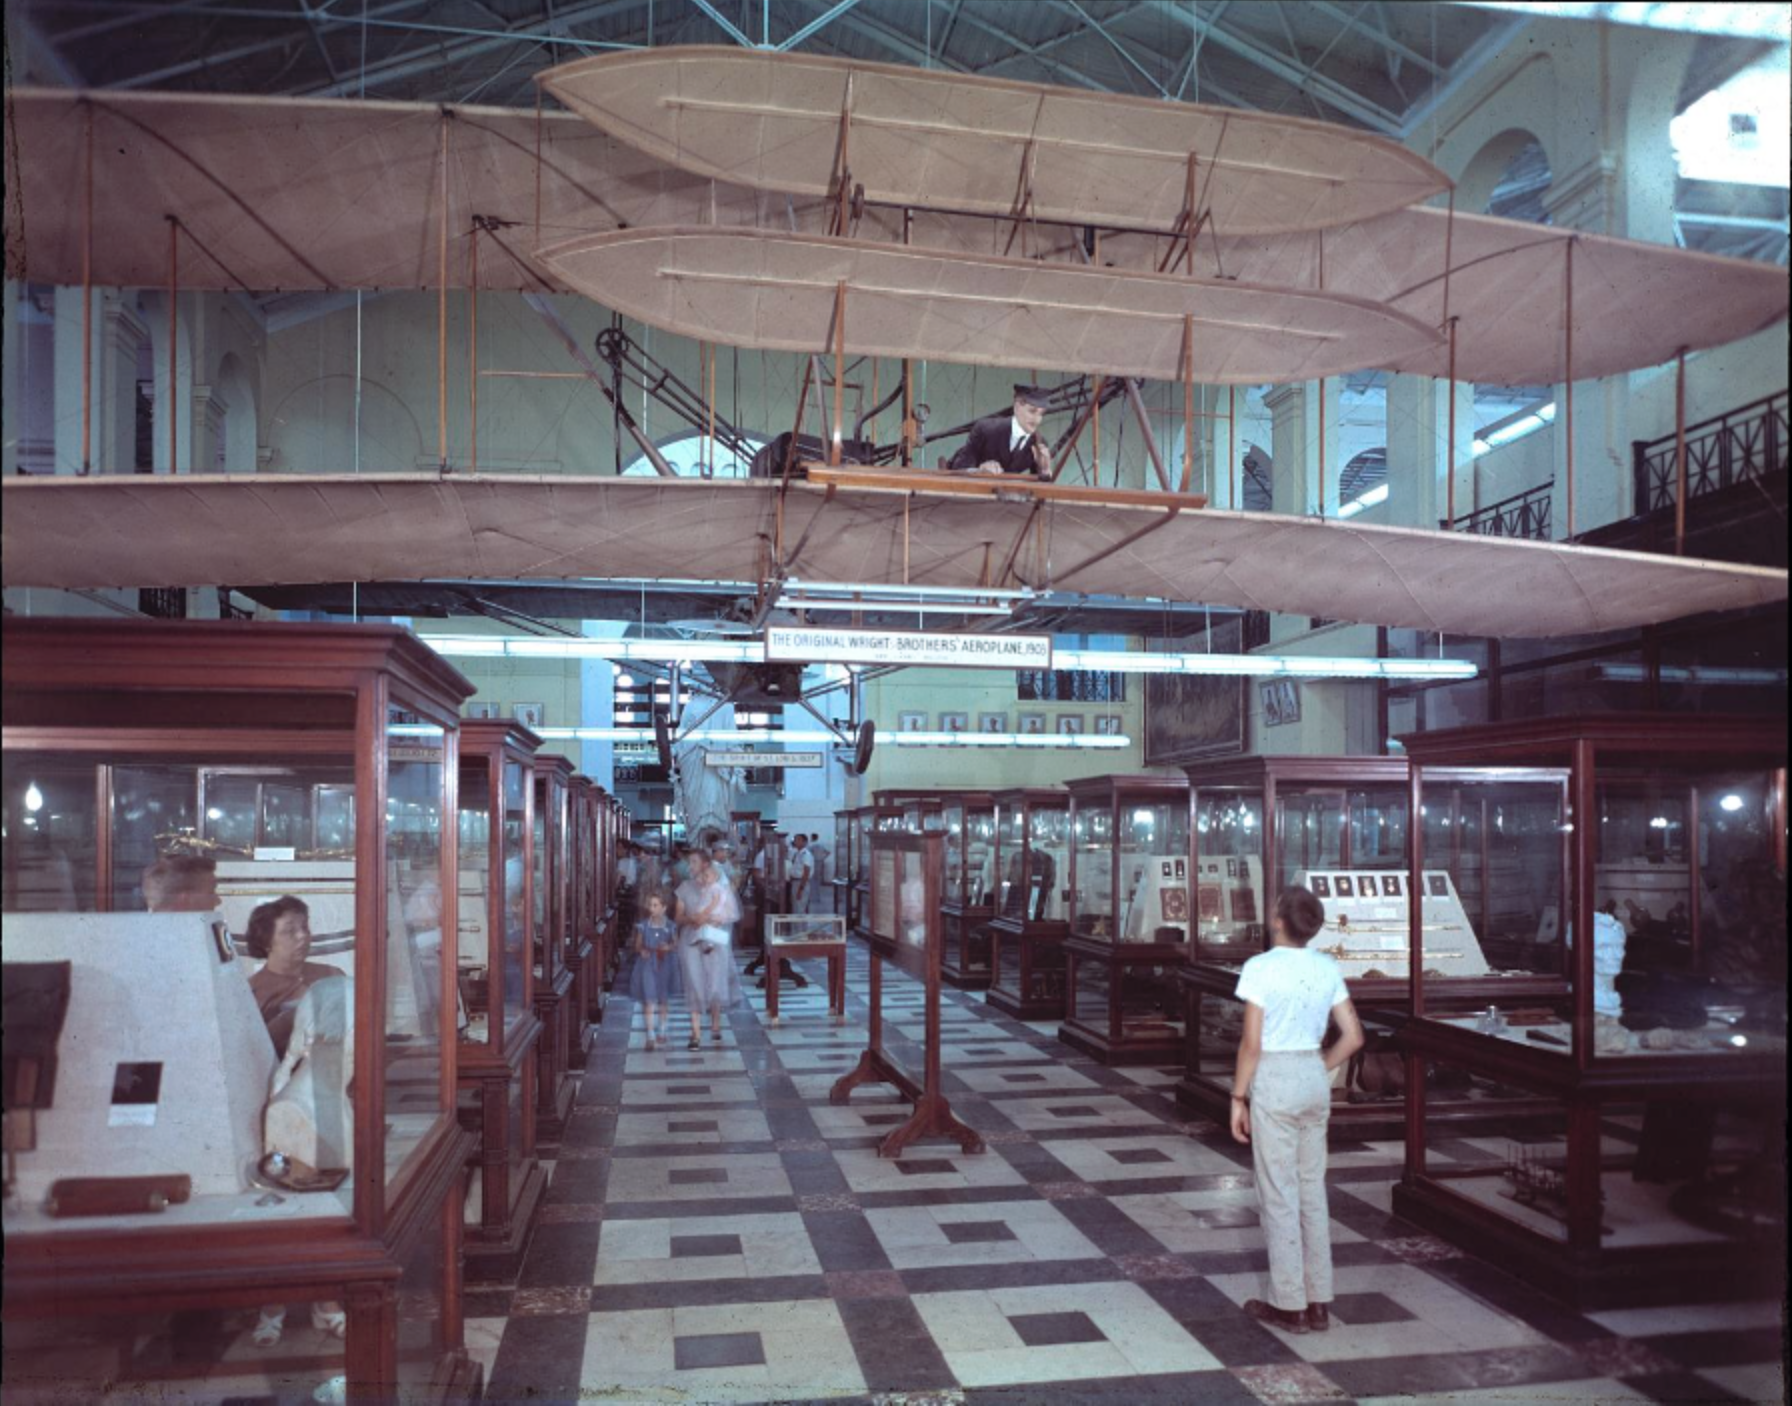 The 1903 Wright Flyer hangs in the North Hall of the Arts and Industries Building. Photo circa 1950s, courtesy of the Smithsonian Institution Archives.